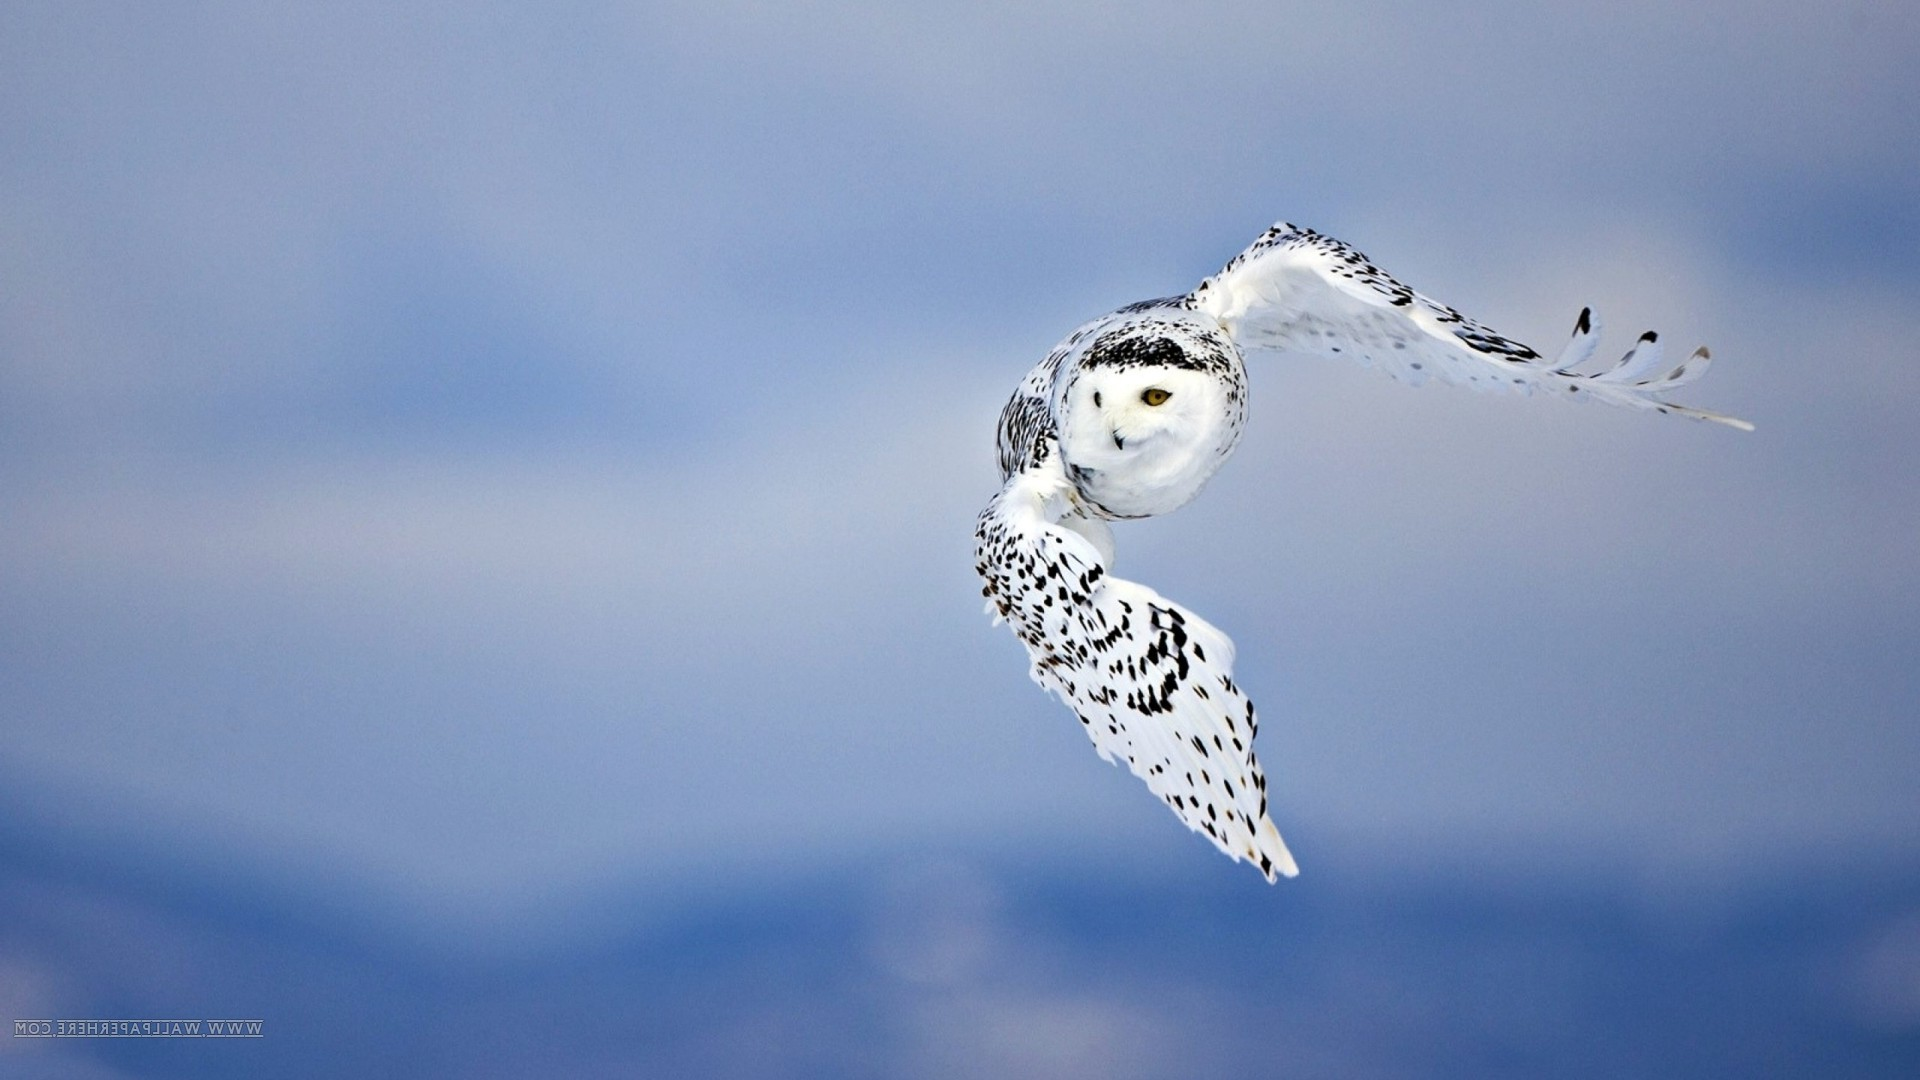 owl fly birds Wallpapers HD Desktop and Mobile Backgrounds 1920x1080